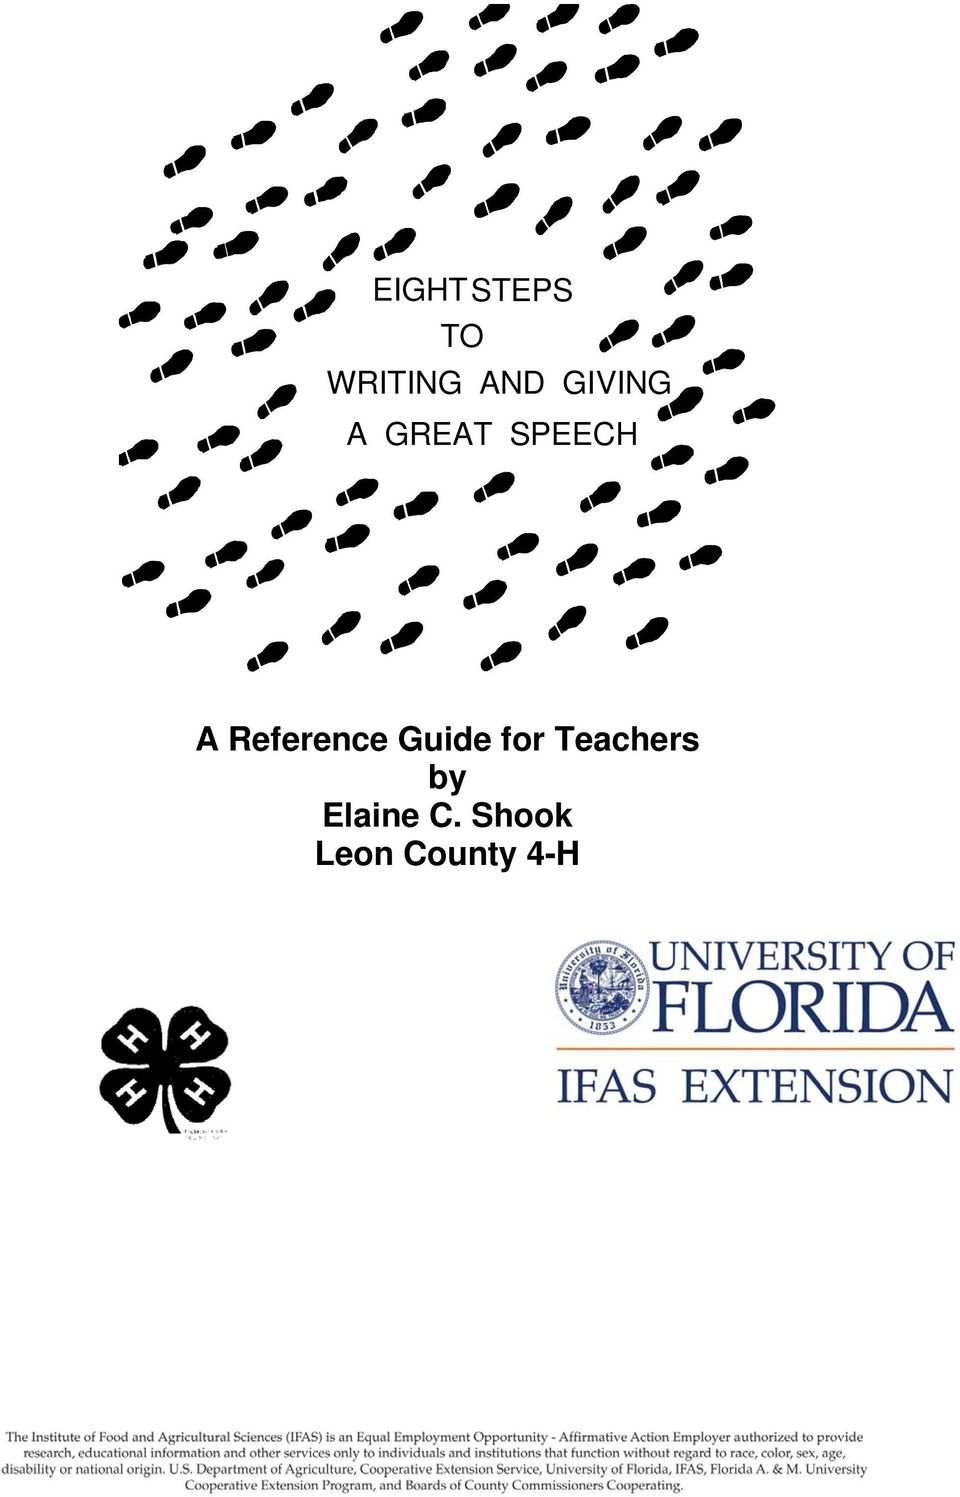 Reference Guide for Teachers